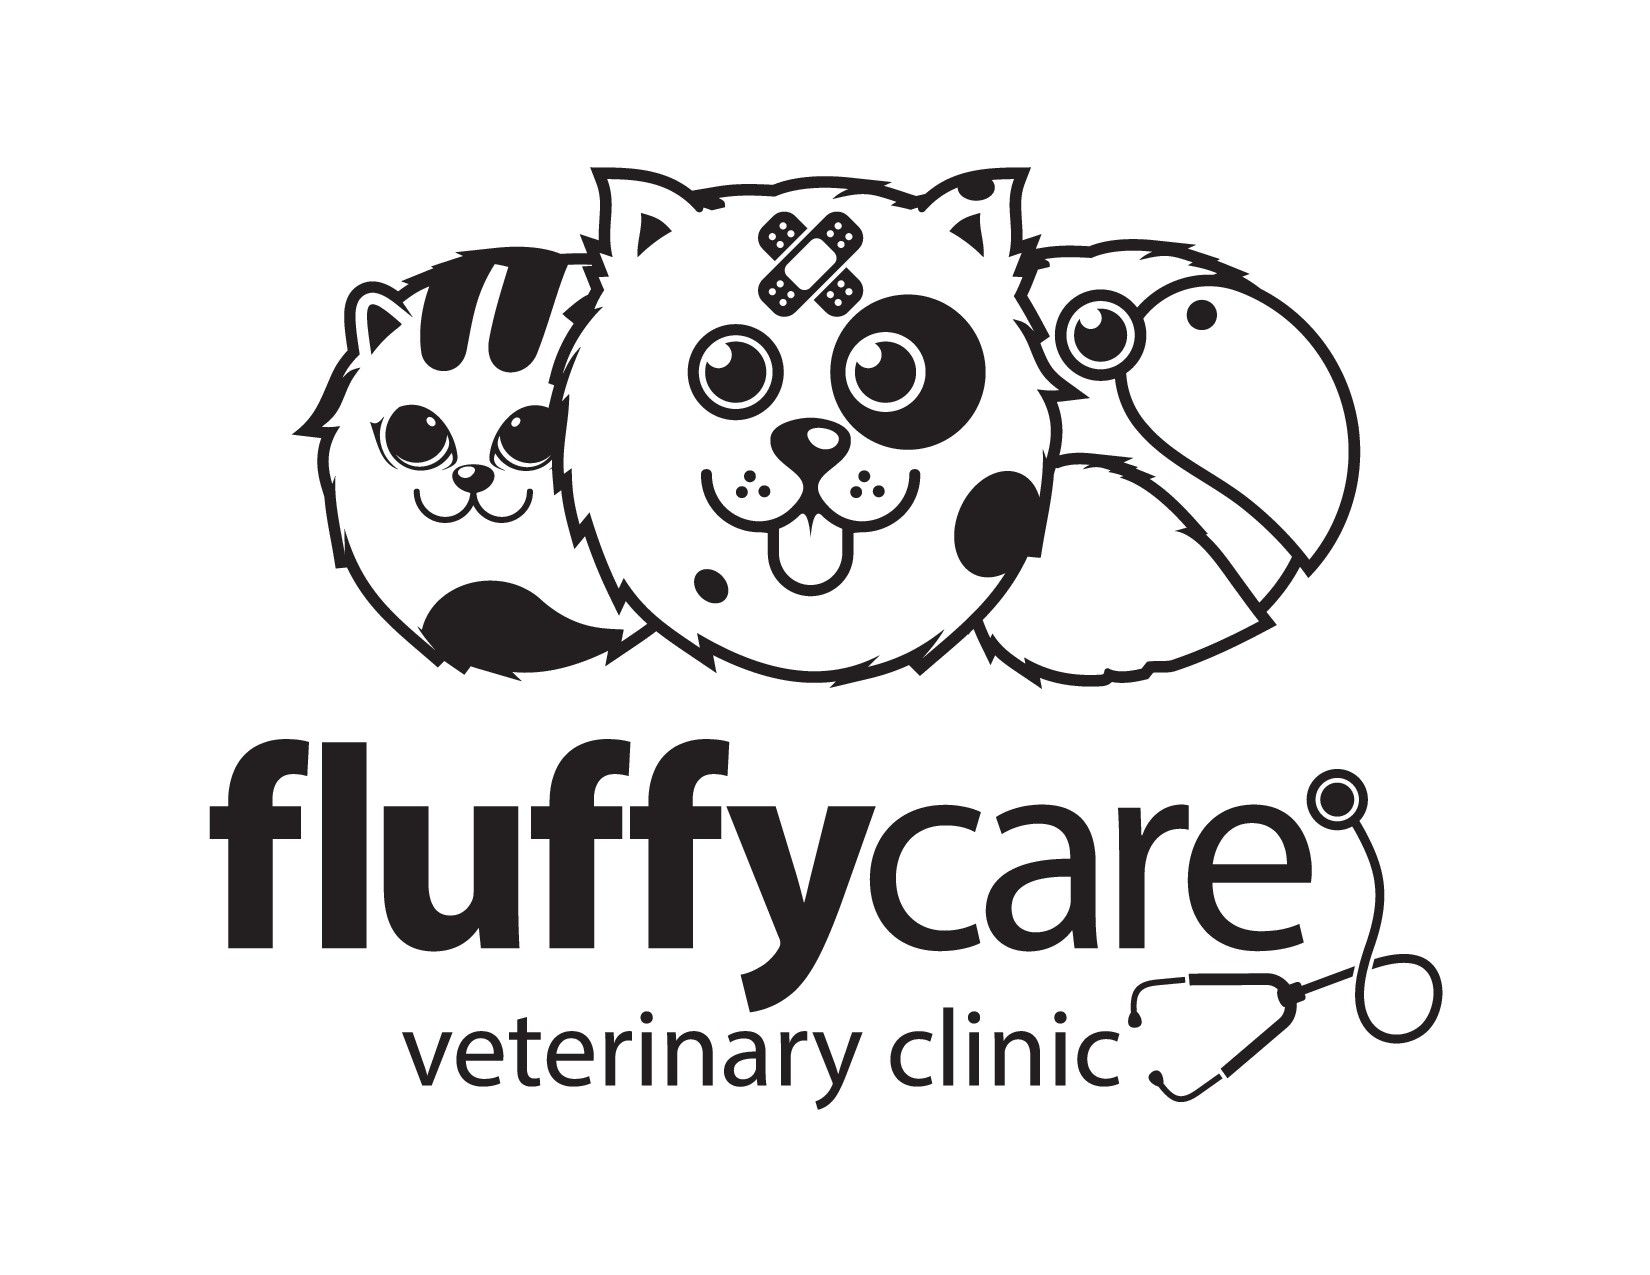 Fluffy Care for Veterinary Clinic